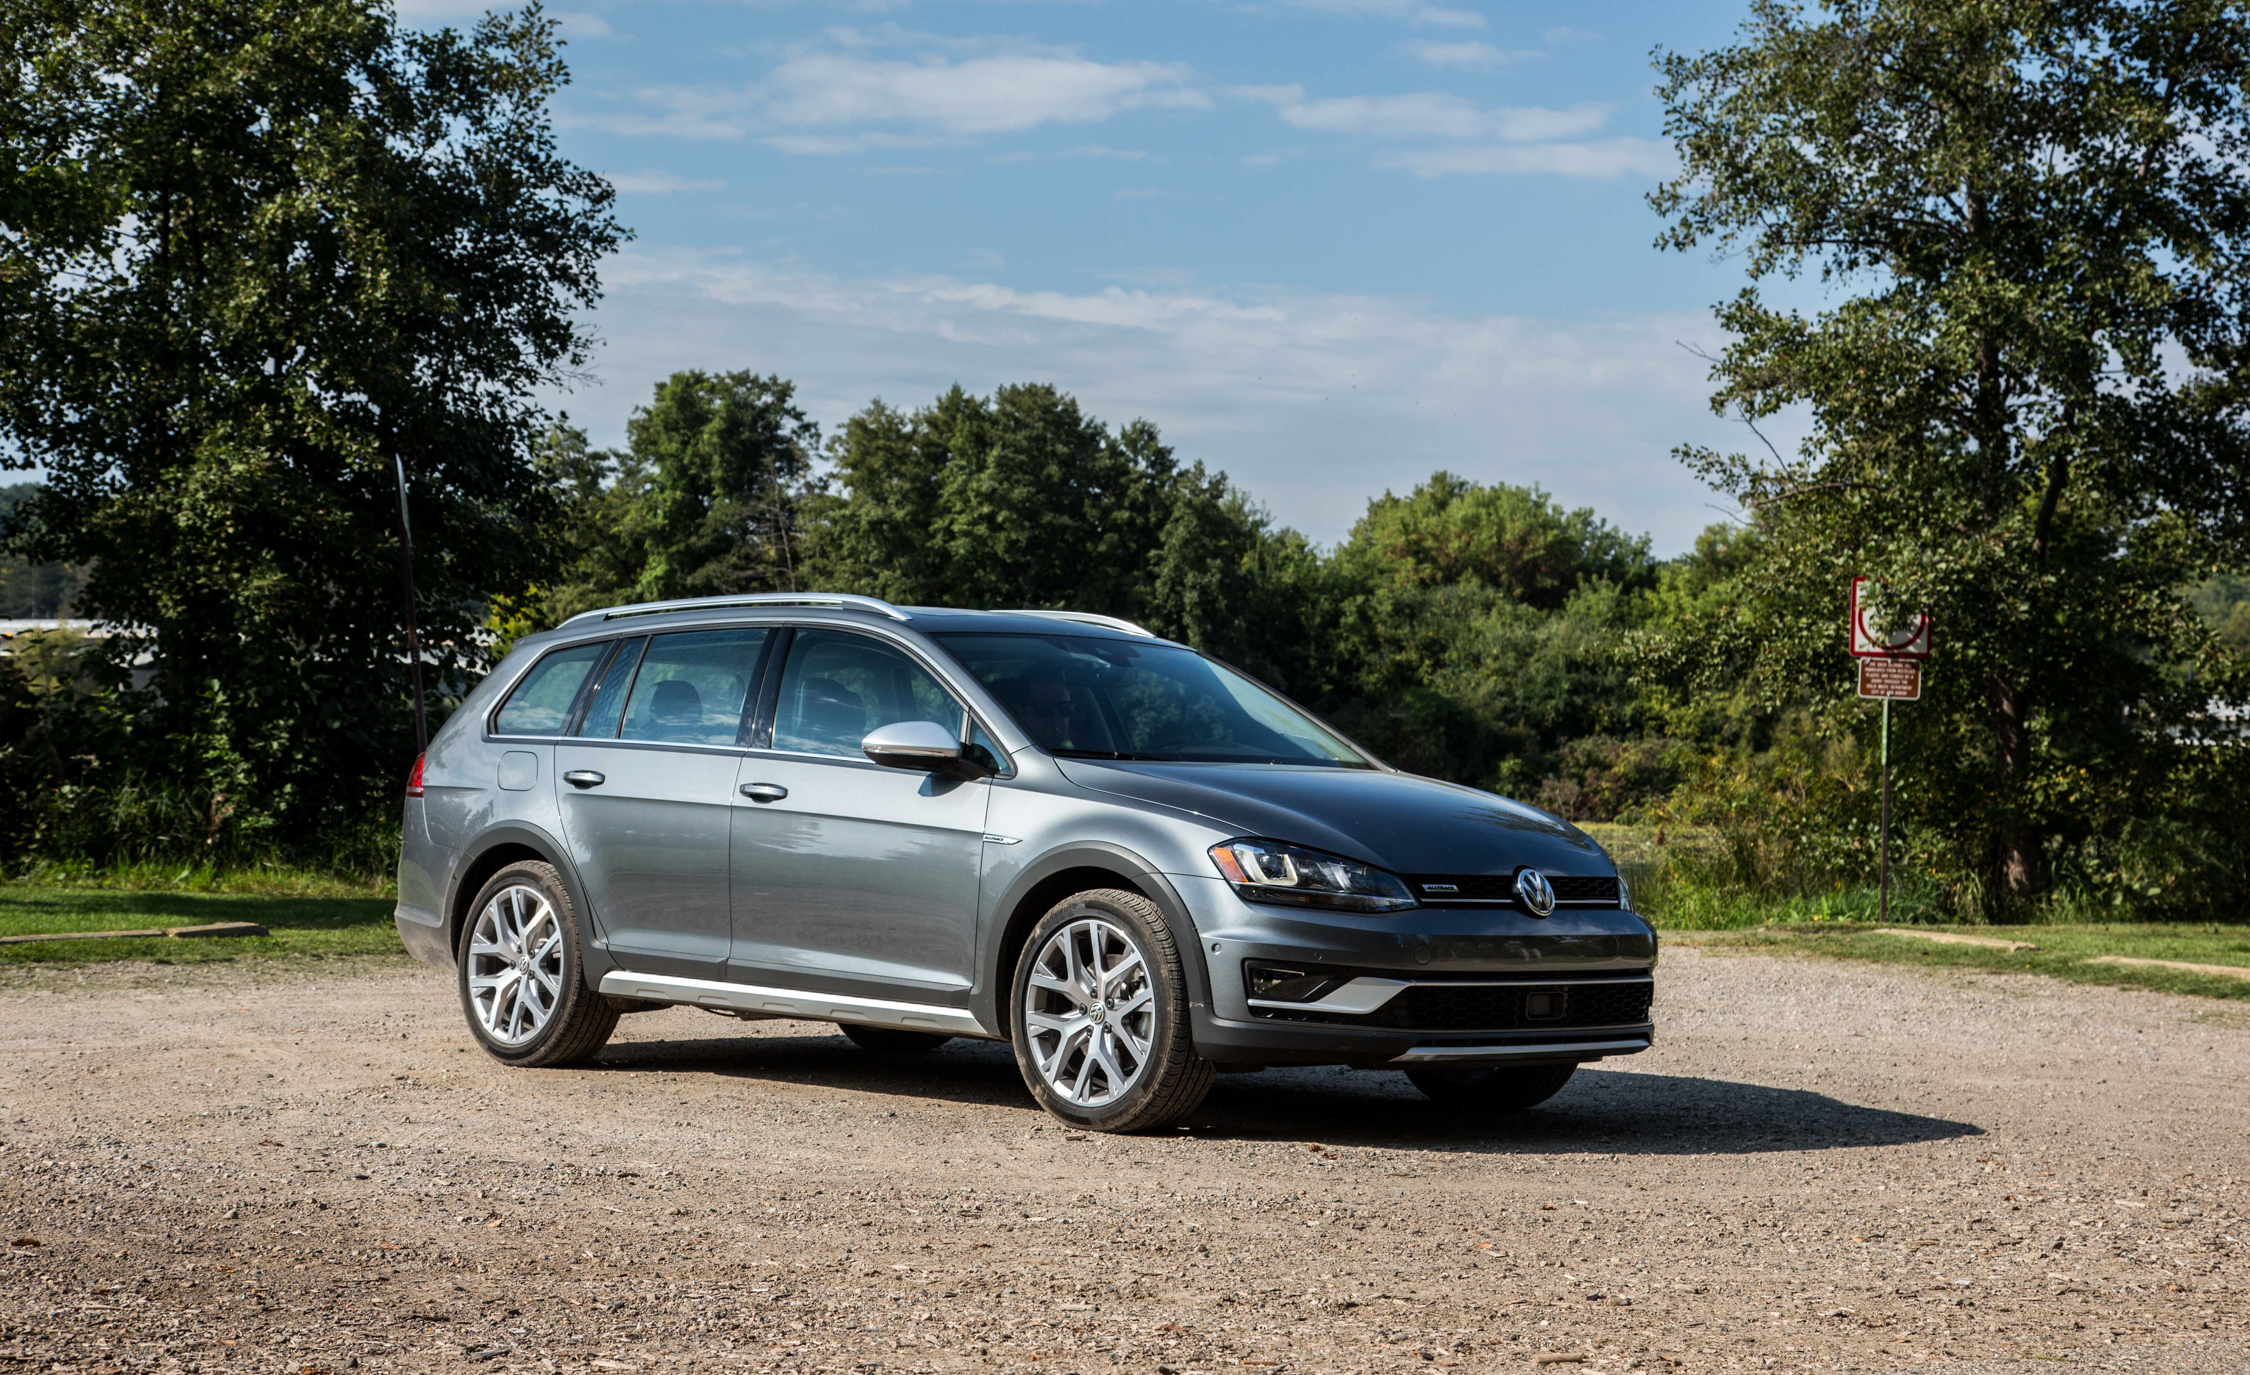 2017 Volkswagen Golf Alltrack (View 3 of 5)